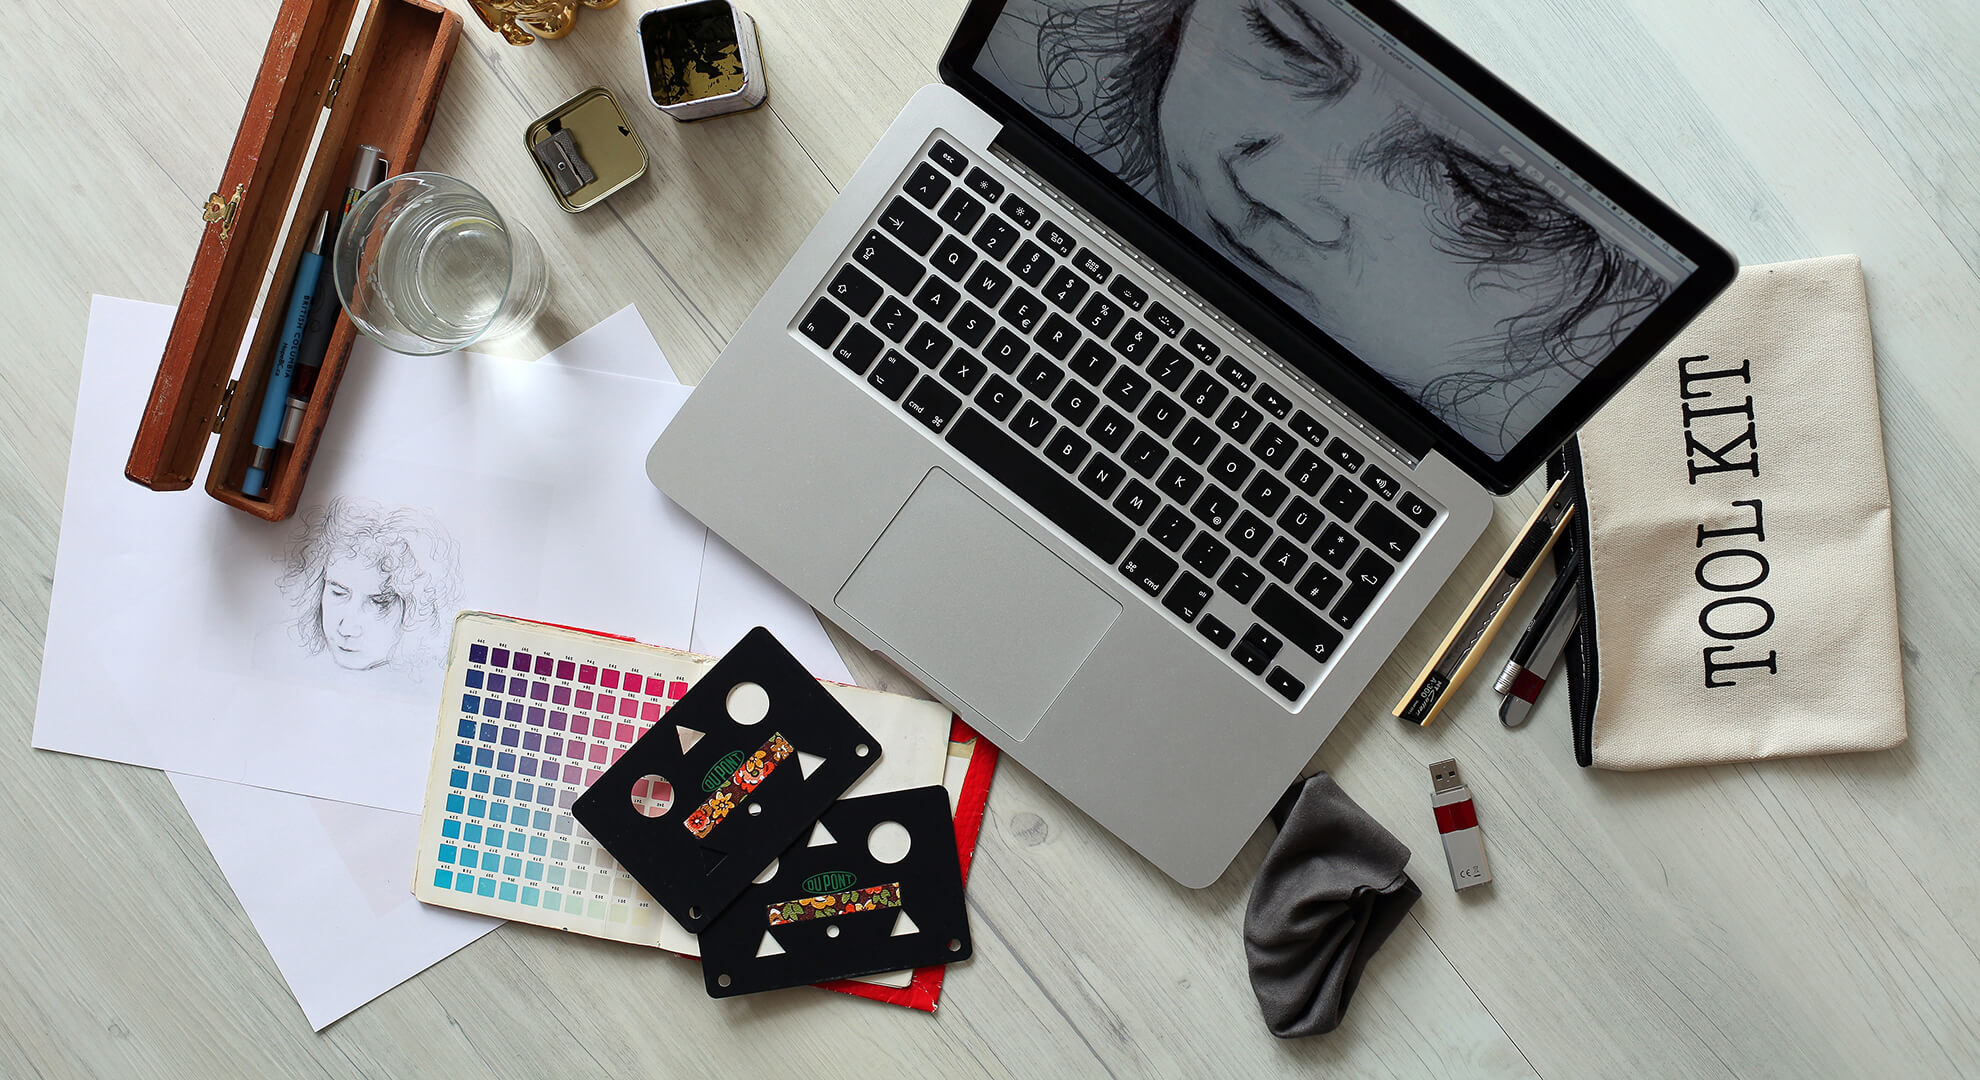 laptop with hand drawing and tools